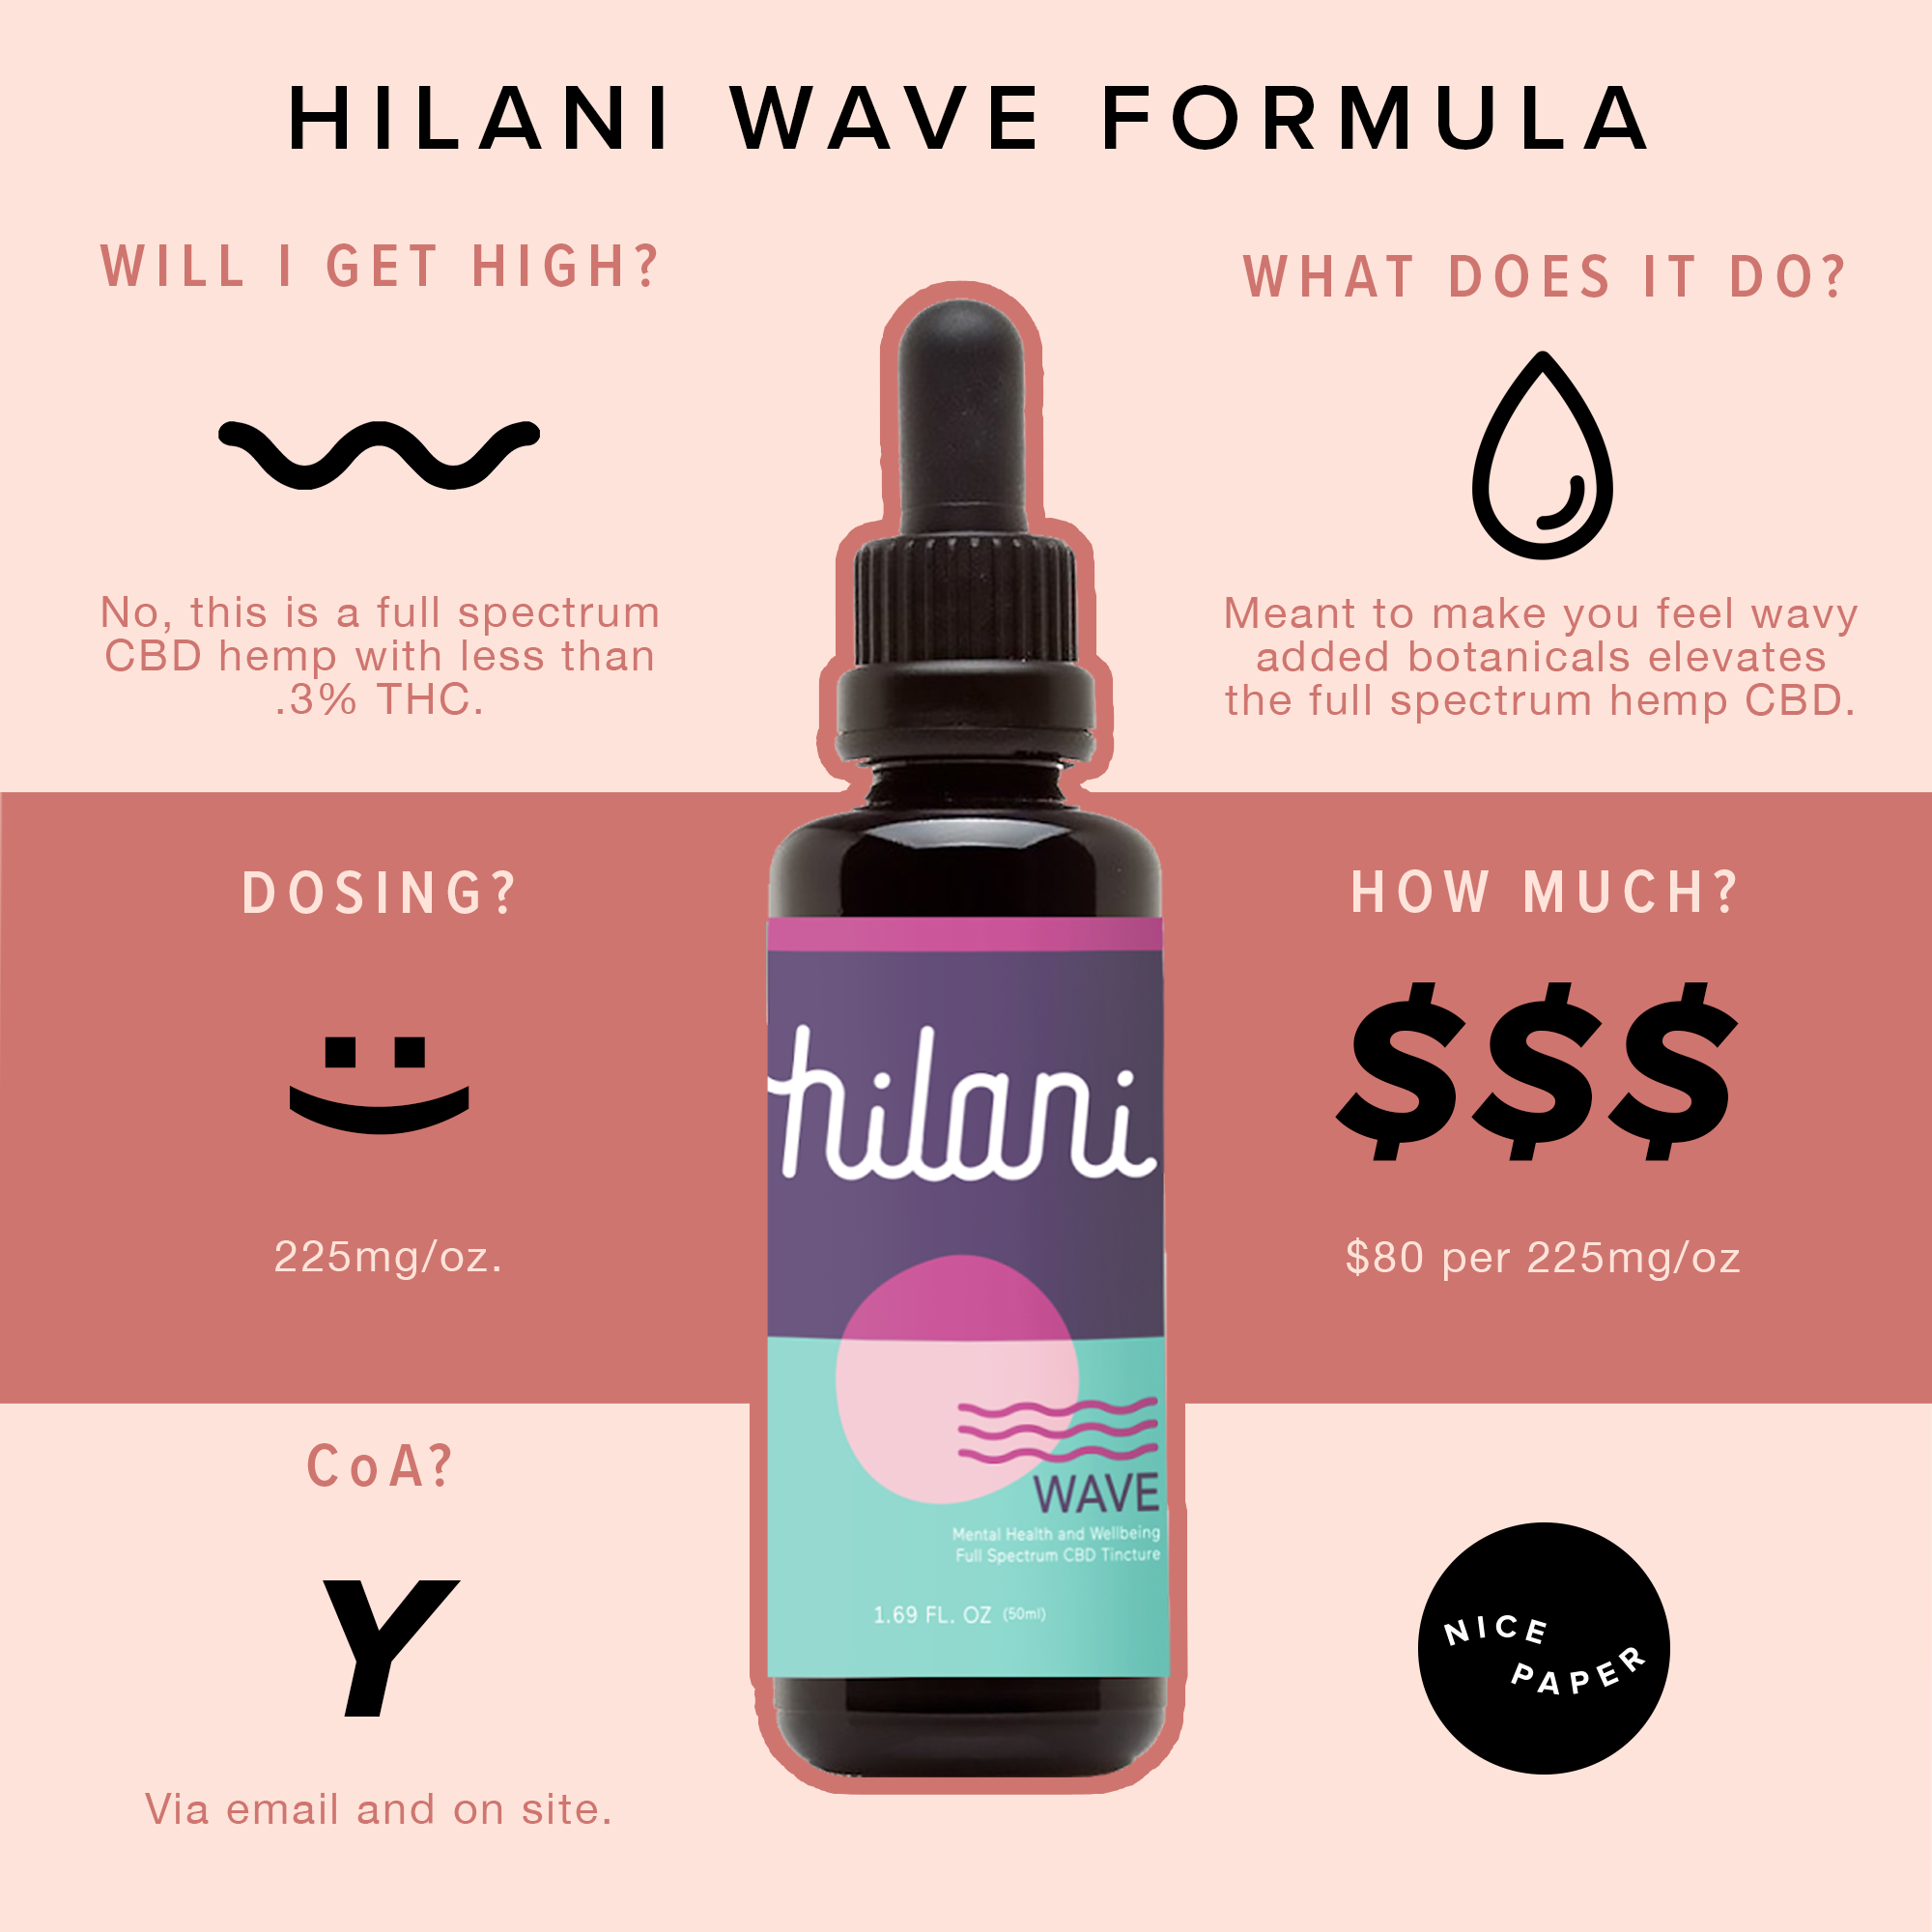 Hilani Wave - Wave includes 380mg of active CBD formulated with organic, consciously sourced botanicals and adaptogenic herbs. Suspended in biodynamic organic hydrosols made of California Poppy, rosemary, and rose geranium, this water-soluble formula is not your typical MCT-oil tincture.